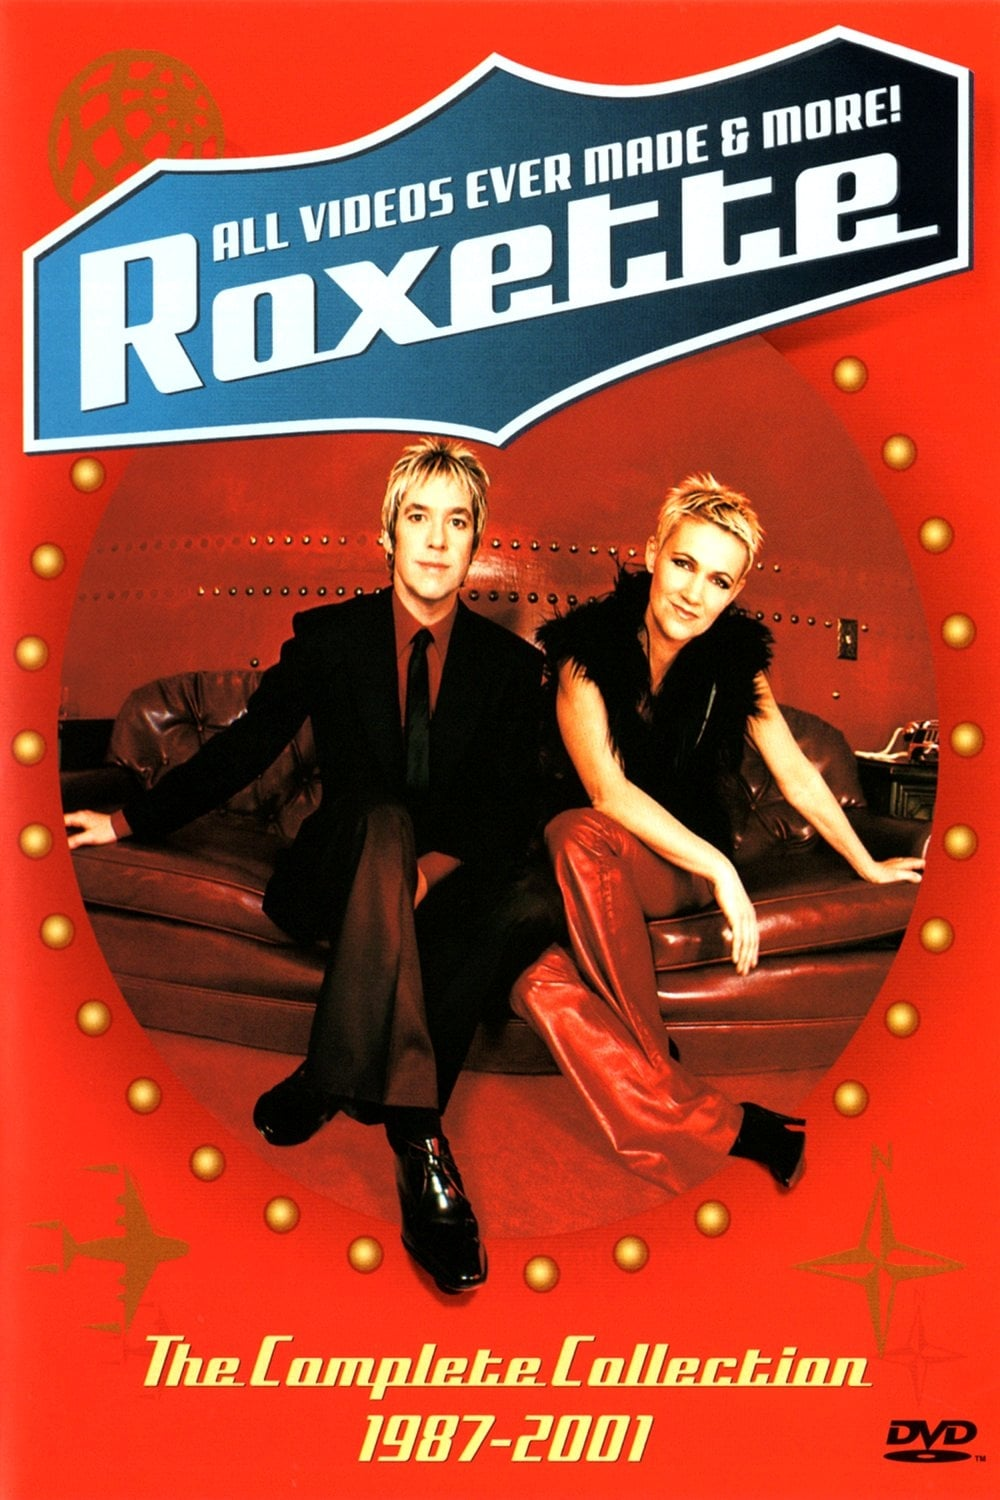 Roxette: All Videos Ever Made & More! (2001)